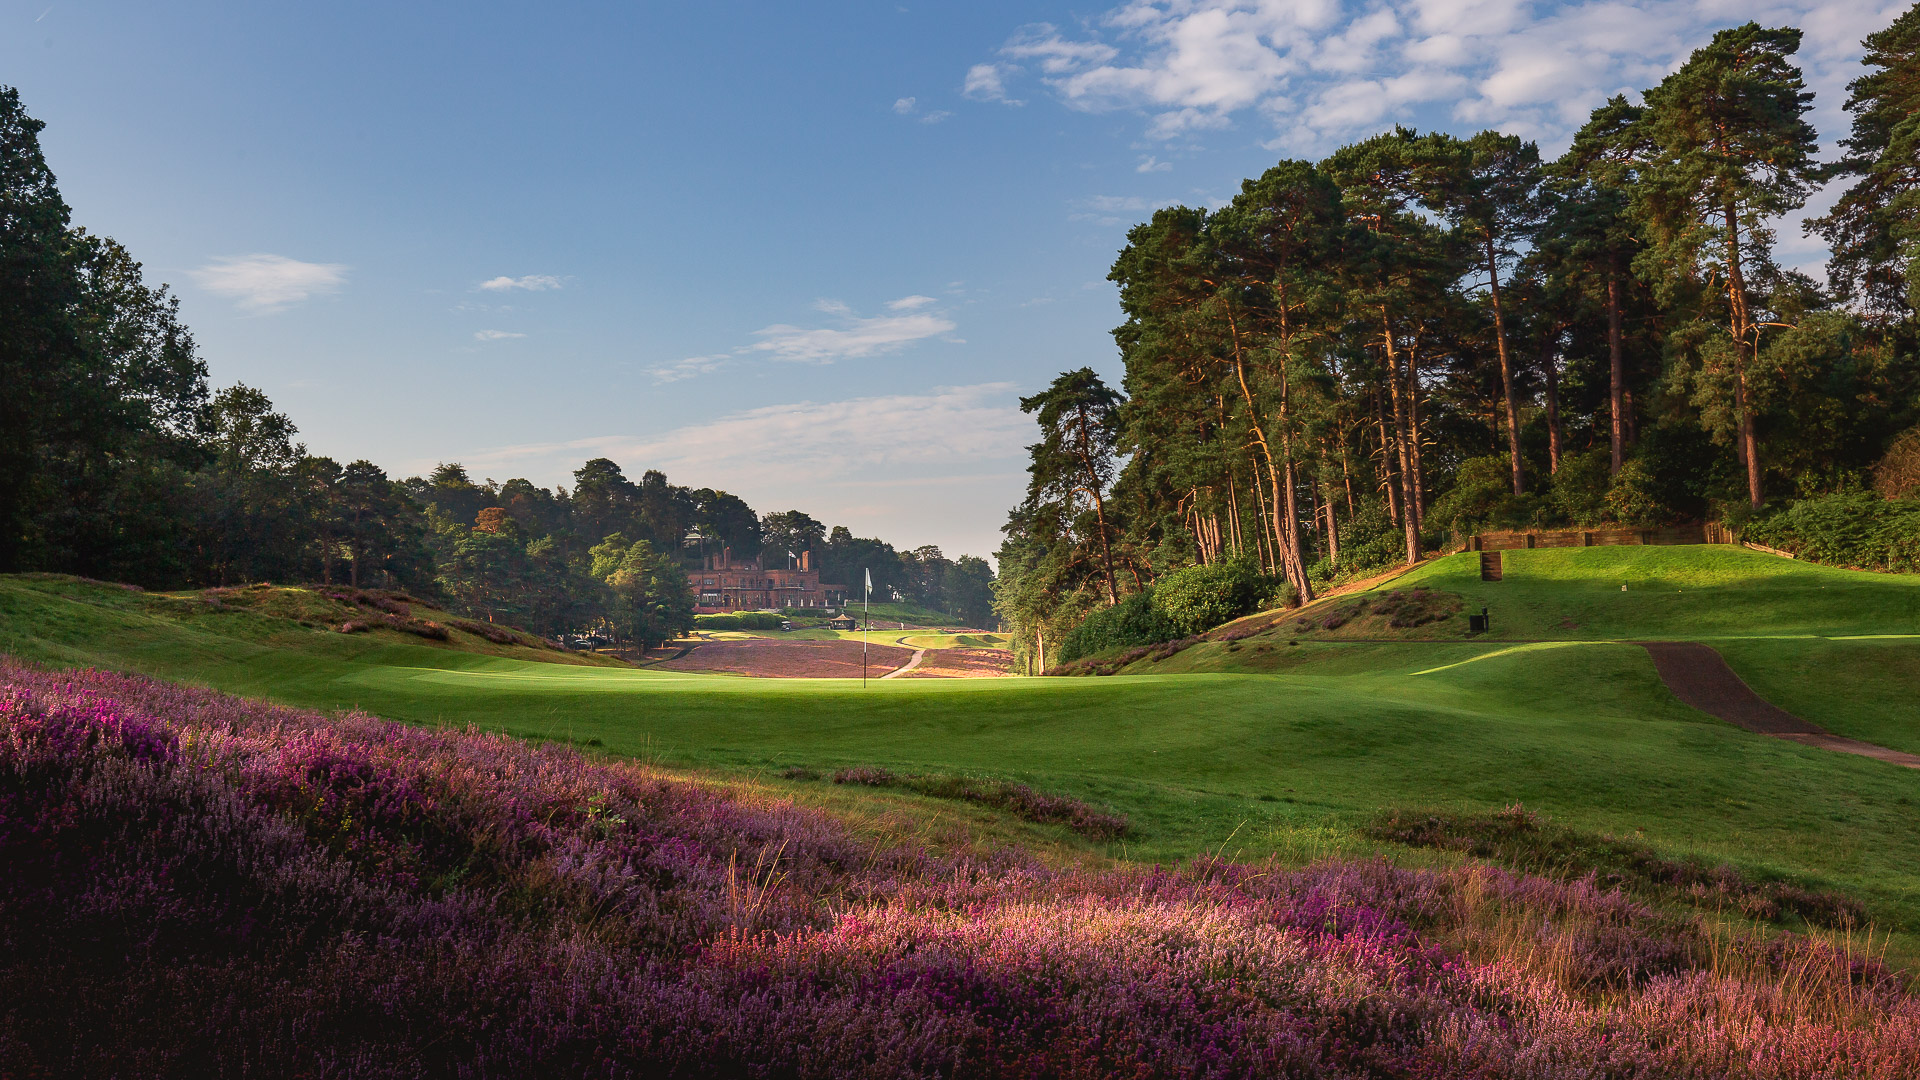 01st-Hole-St-Georges-Hill-Golf-Club-2363-Edit